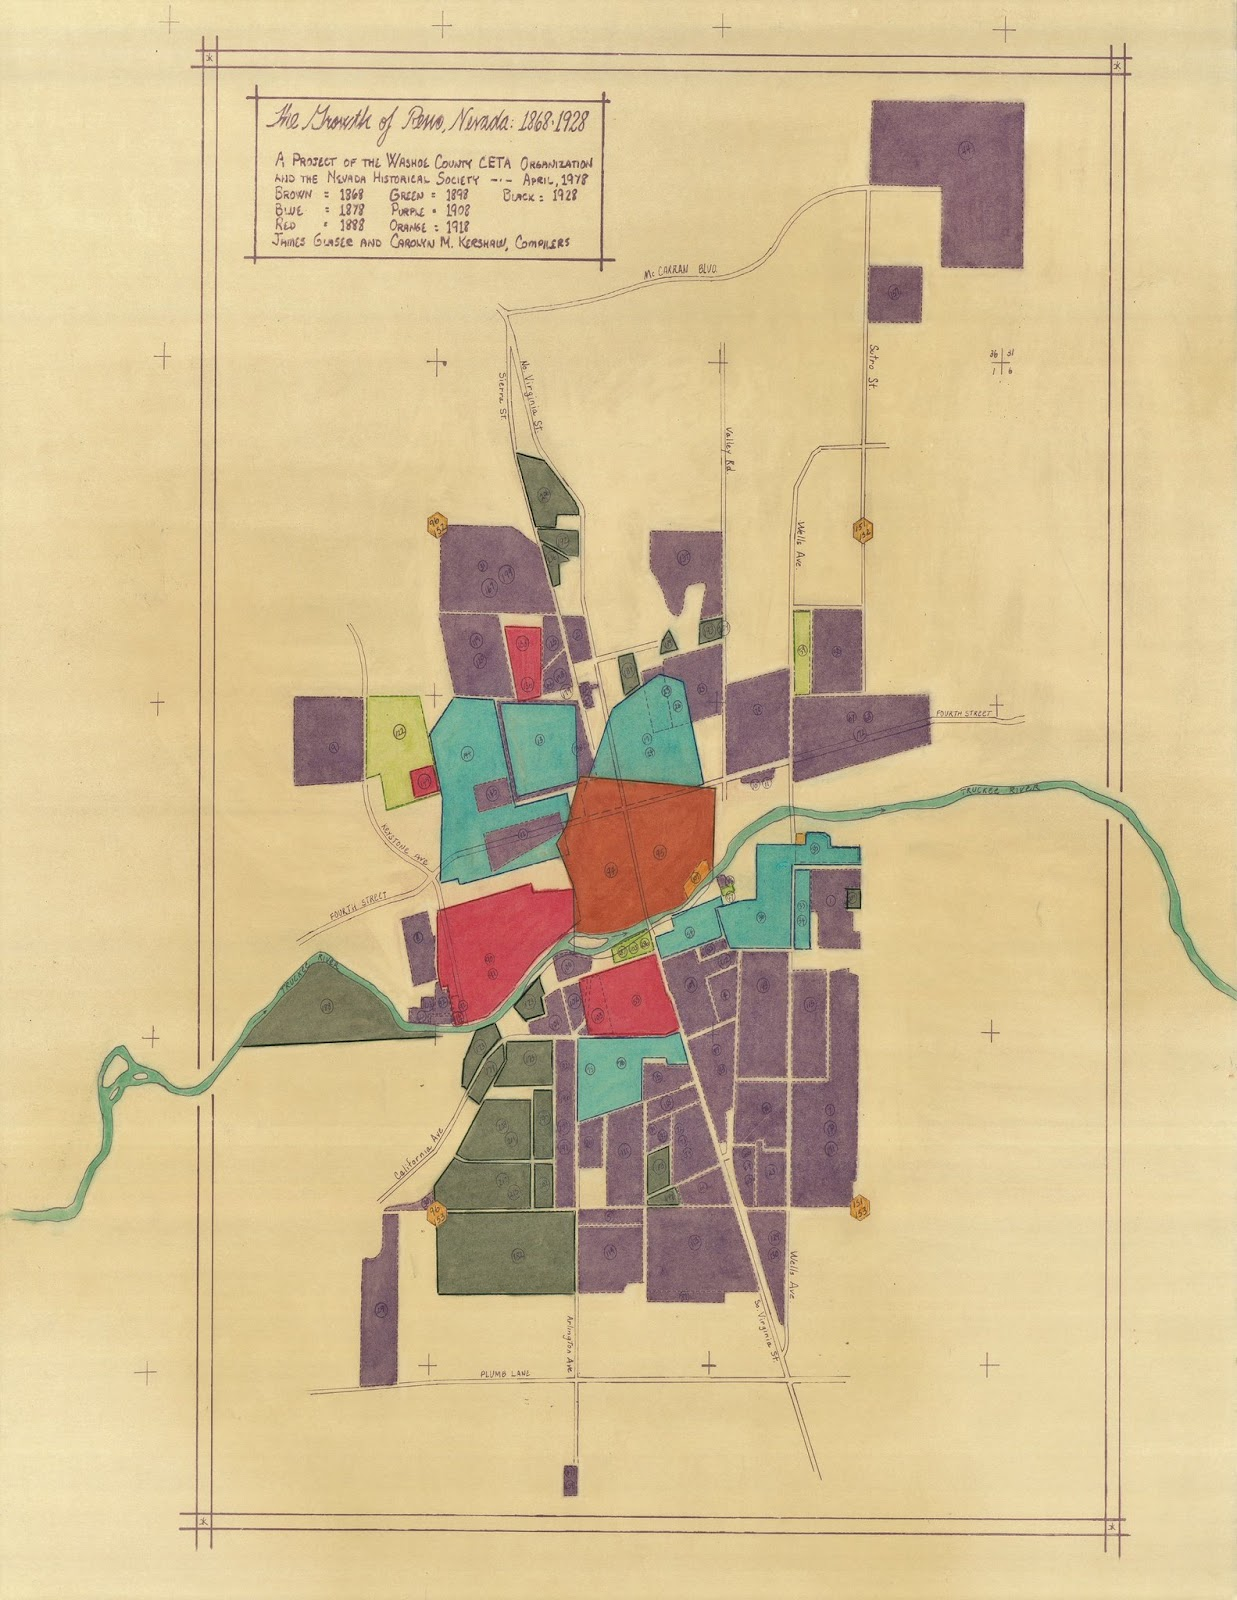 A map showing local development from 1868-1928 and color coded by the year it was developed shows that some of Reno's most historic structures and neighborhoods are located in Ward 1, Barber said. The brown pentagon shape in the middle was the original 1868 plat map, and then it expanded outward, making preservation a key issue in the ward.